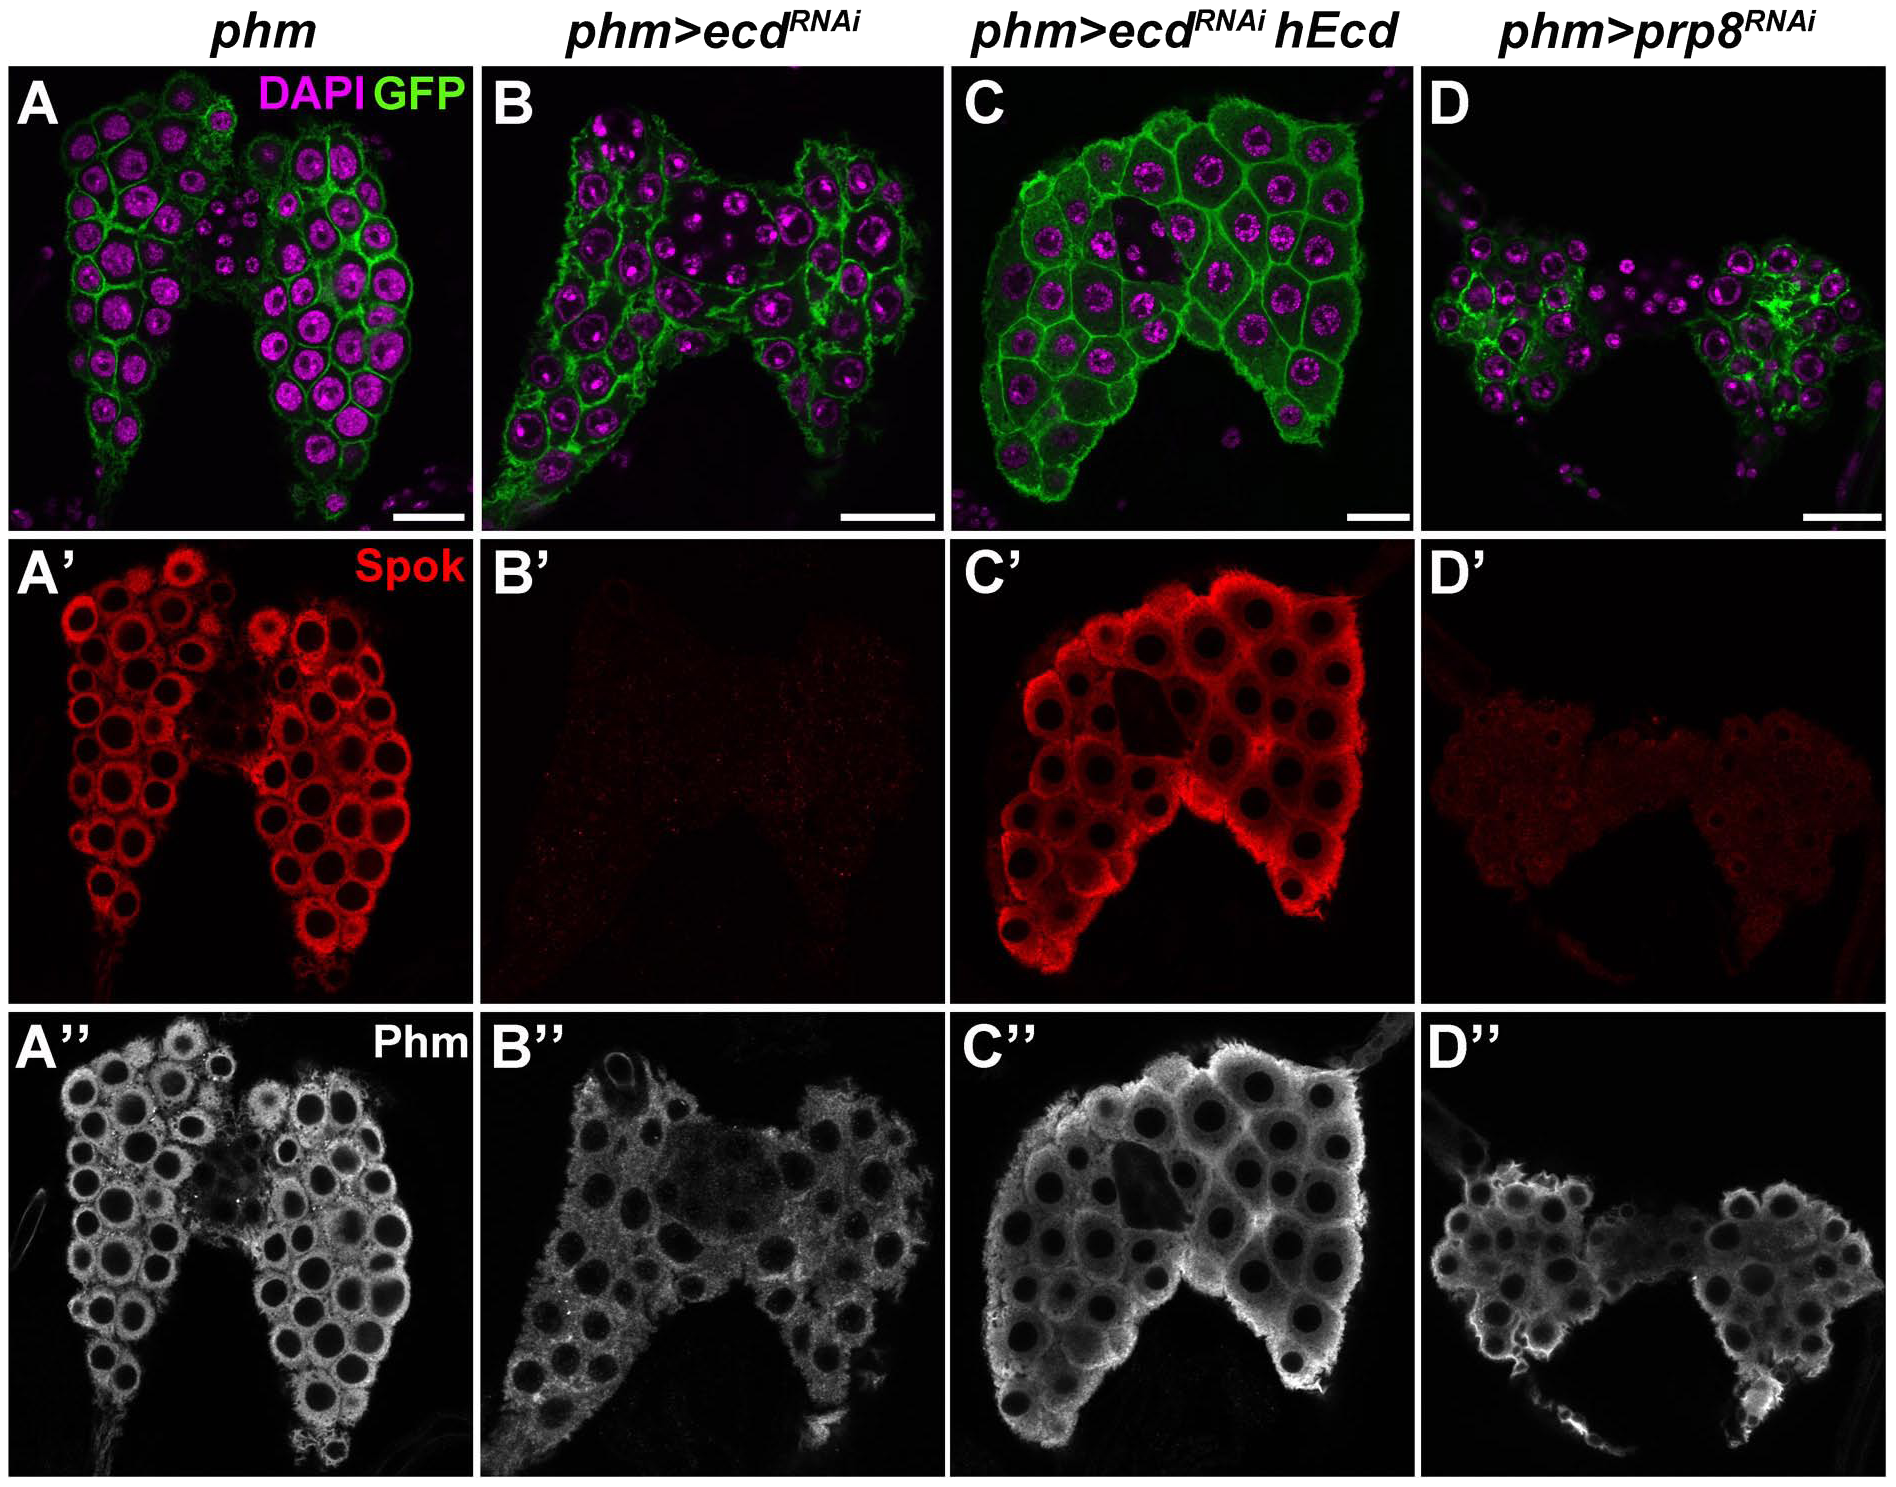 Ecd and Prp8 are required for expression of Spok in the PG.